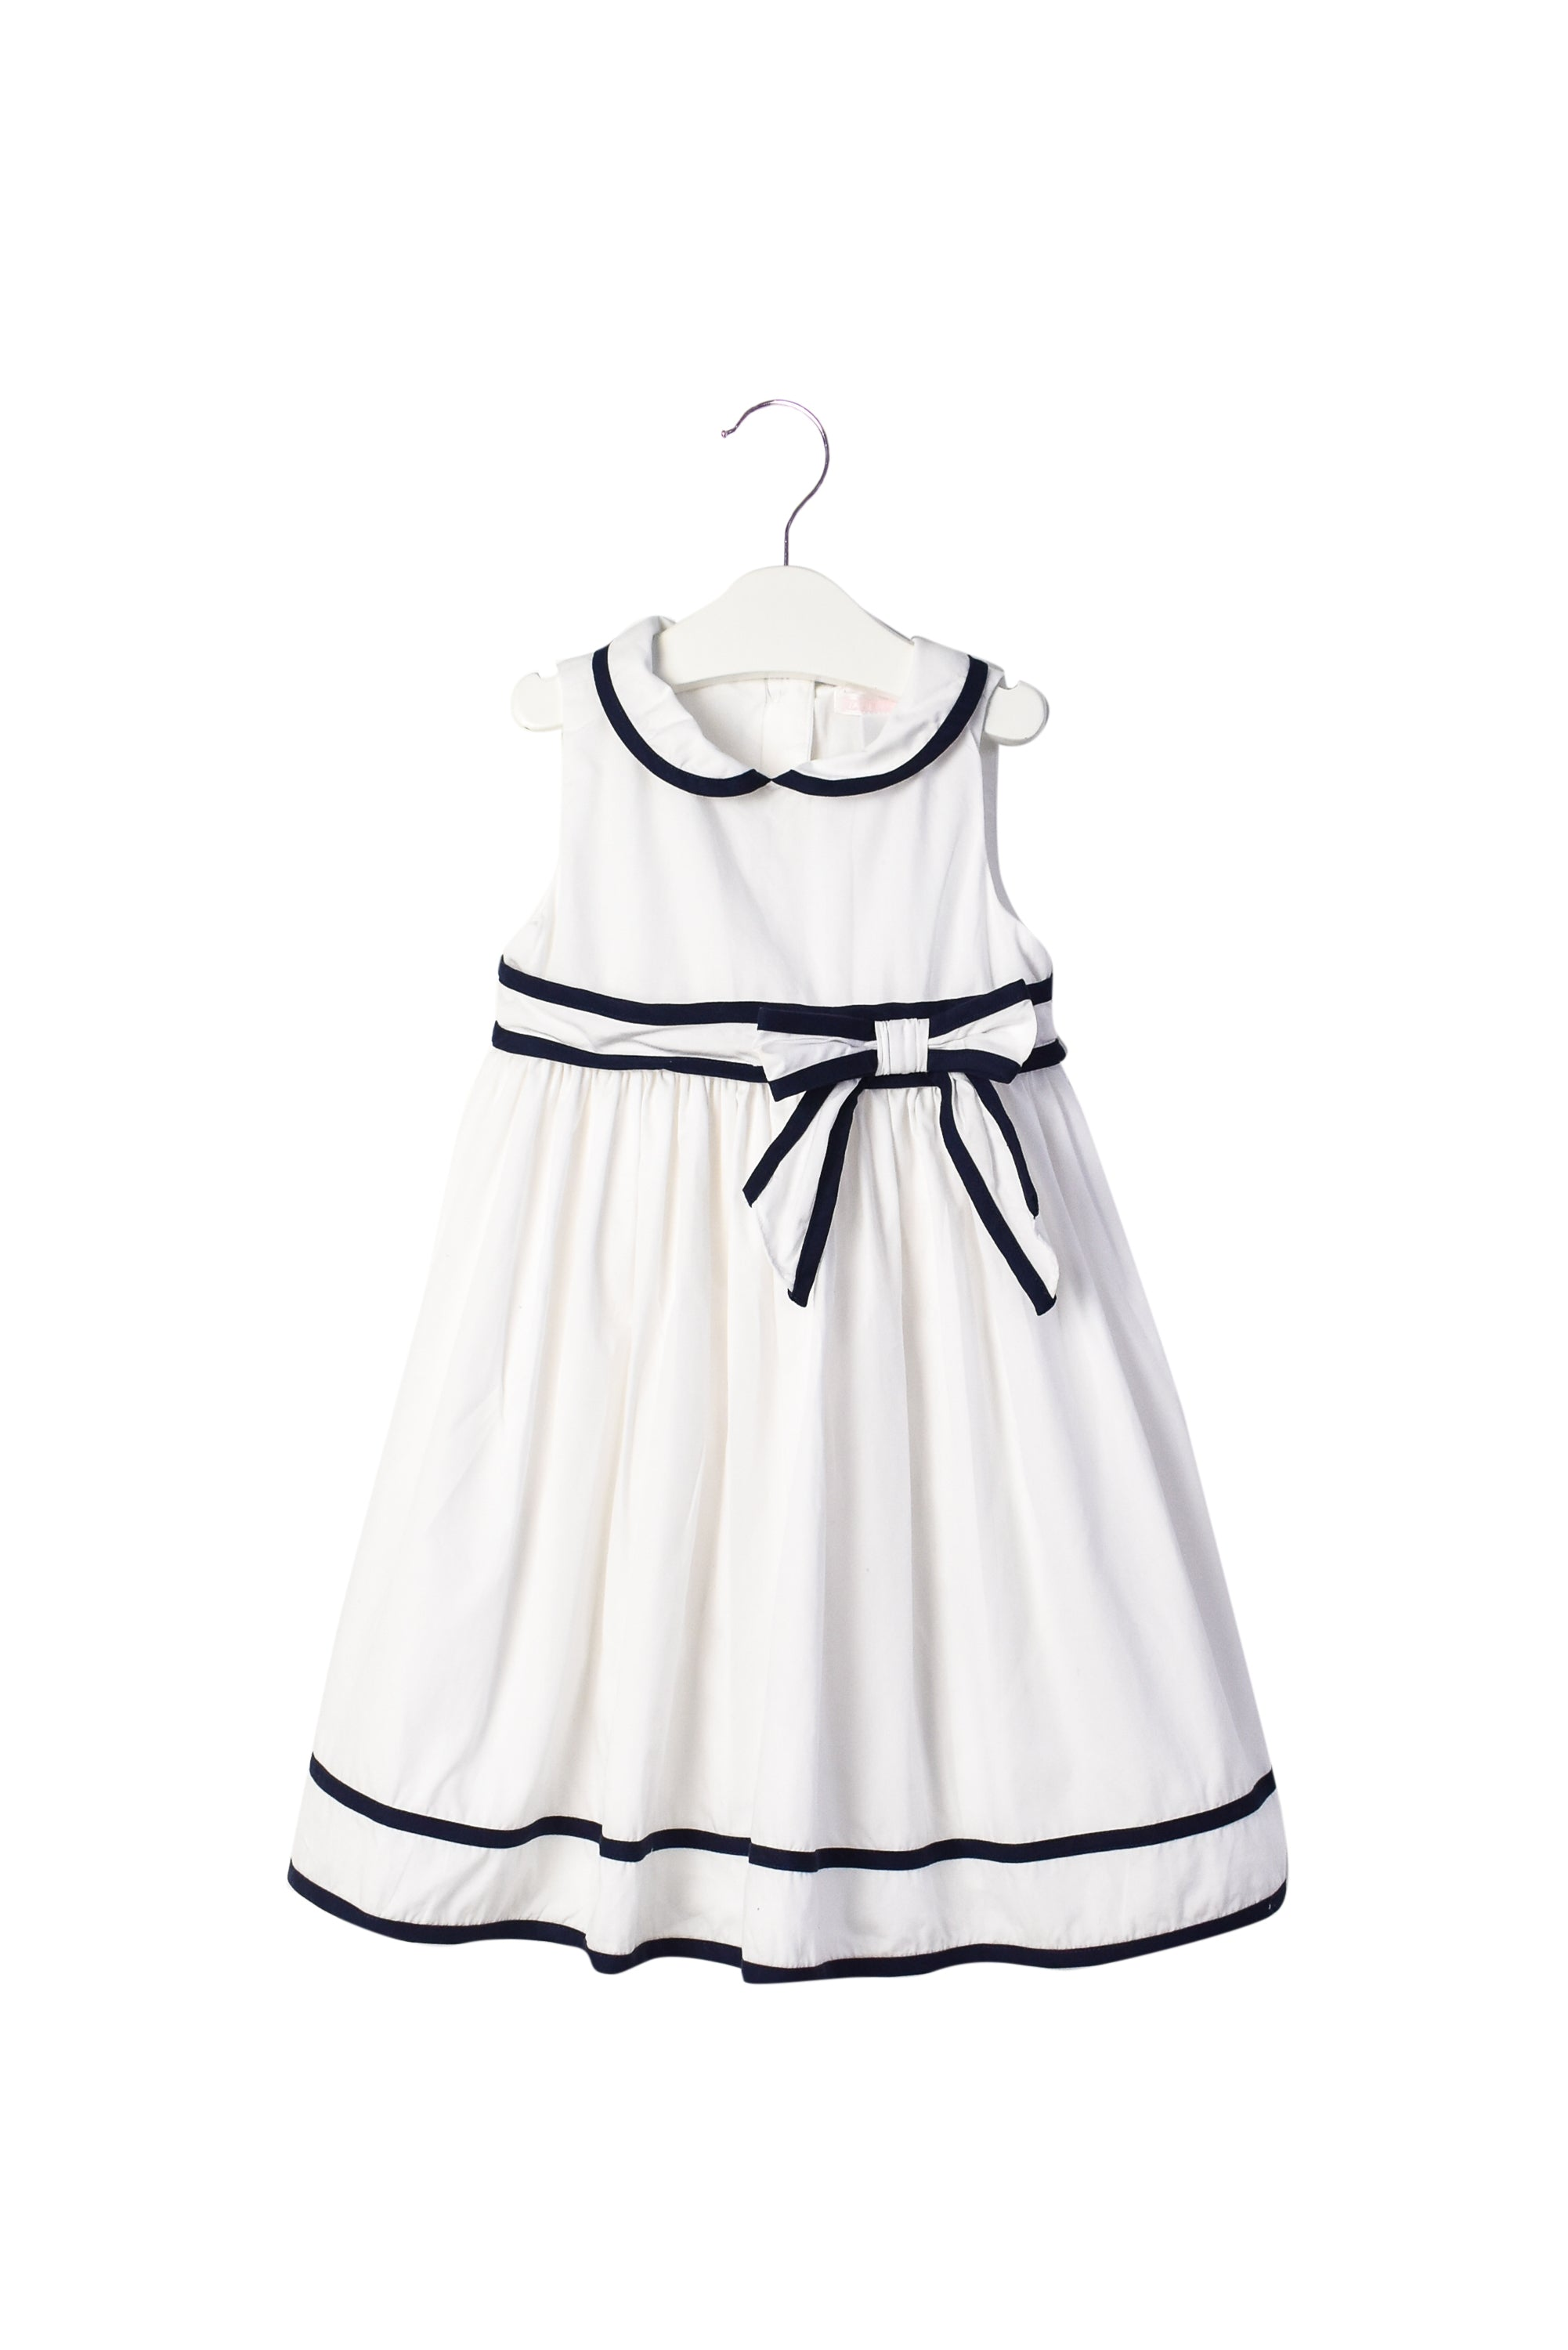 10007223 Janie & Jack Baby~ Dress 18-24M at Retykle